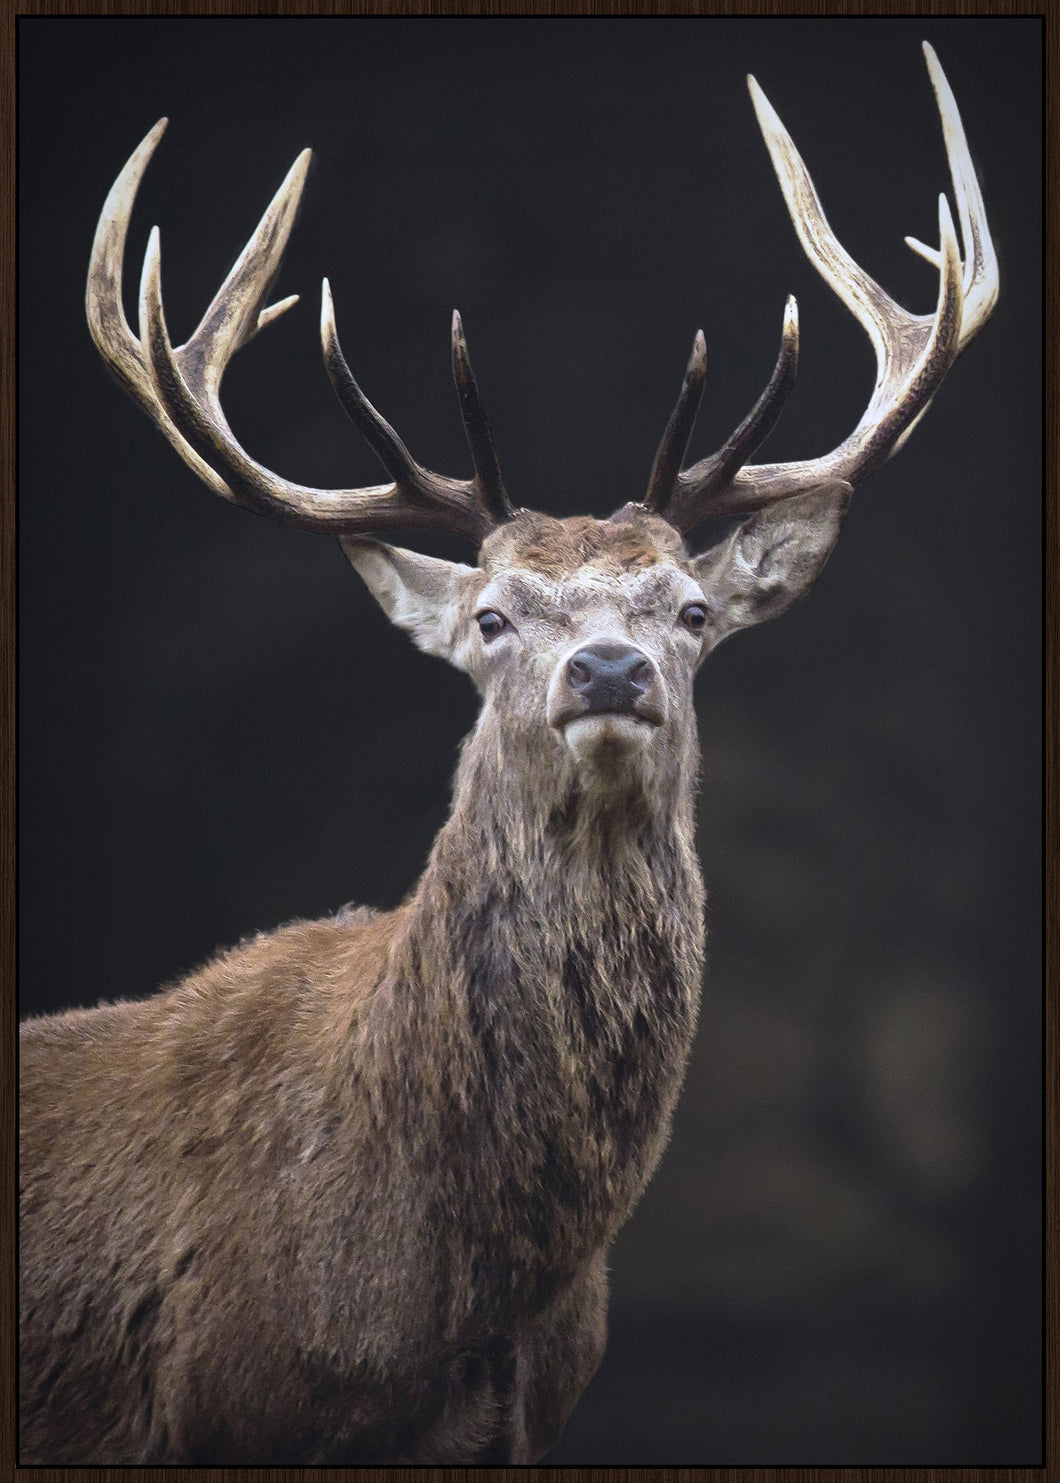 Canvas Print - Noble Stag - Rosie's Gifts and Homeware - Gift Shop NZ